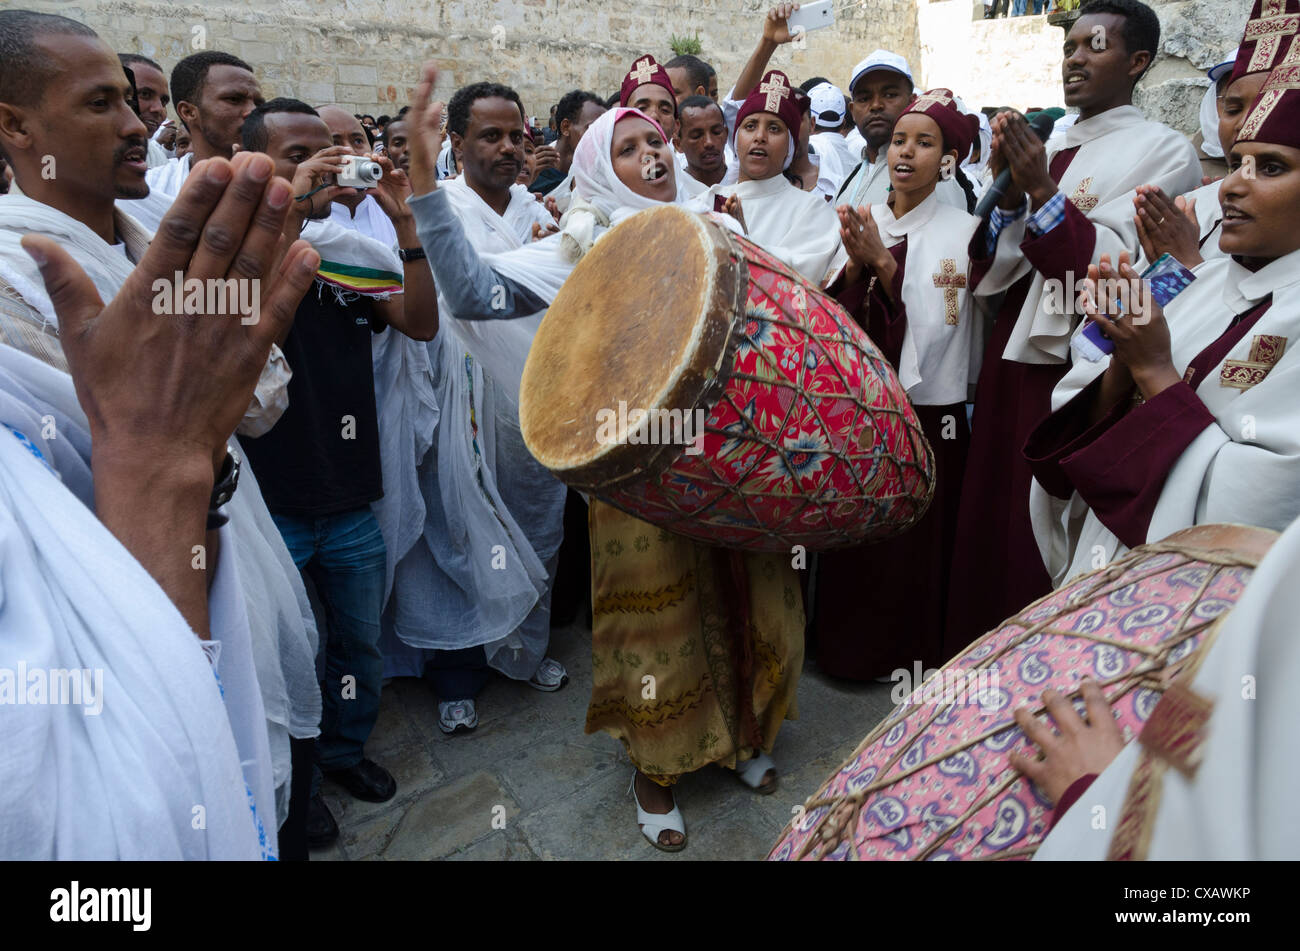 Ethiopian Good Friday celebrations at the Holy Sepulcre, Old City, Jerusalem, Israel, Middle East - Stock Image